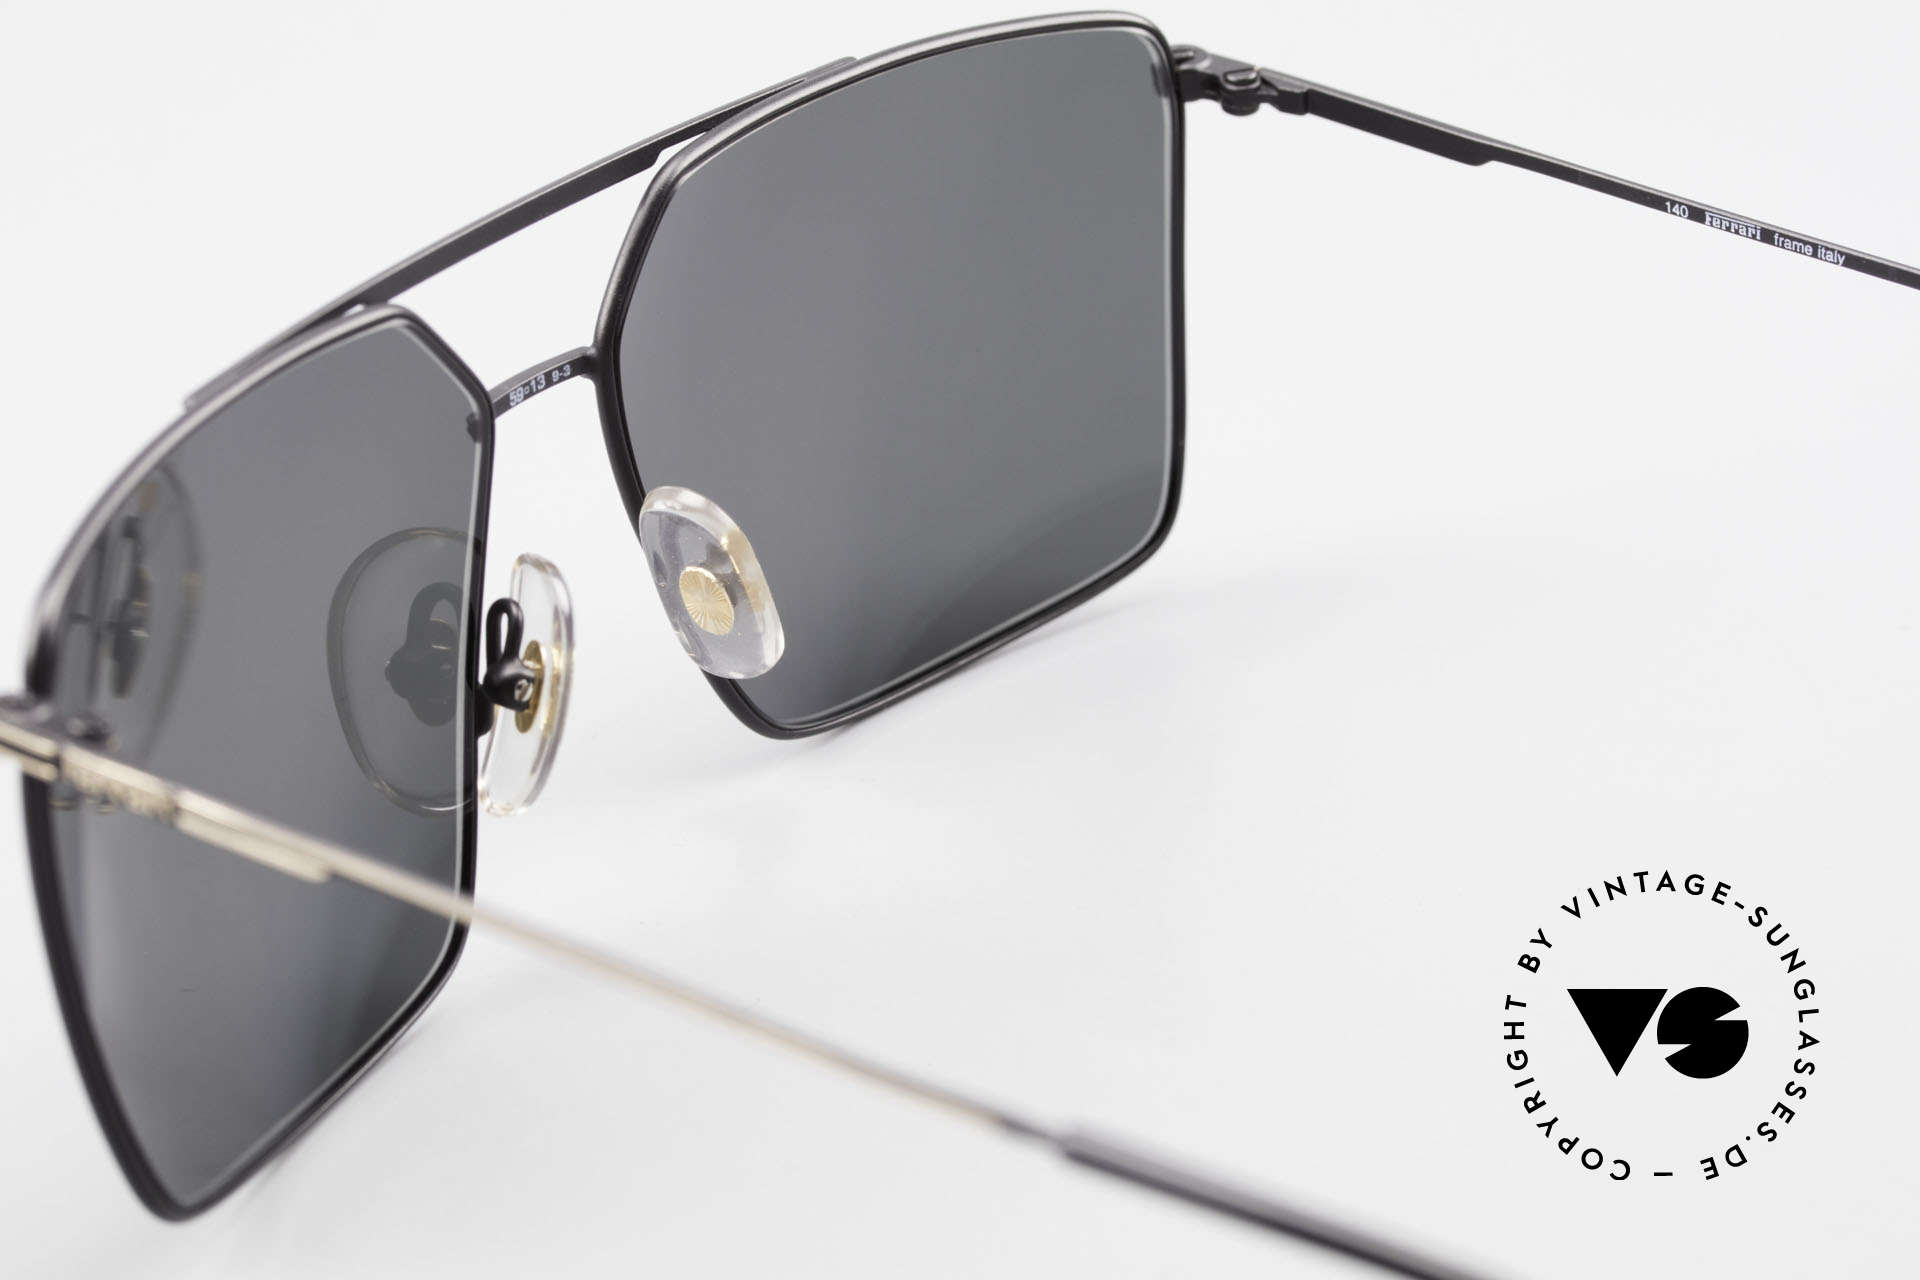 Ferrari F46 Retro Sunglasses Old Vintage, the sun lenses can be replaced with optical lenses, Made for Men